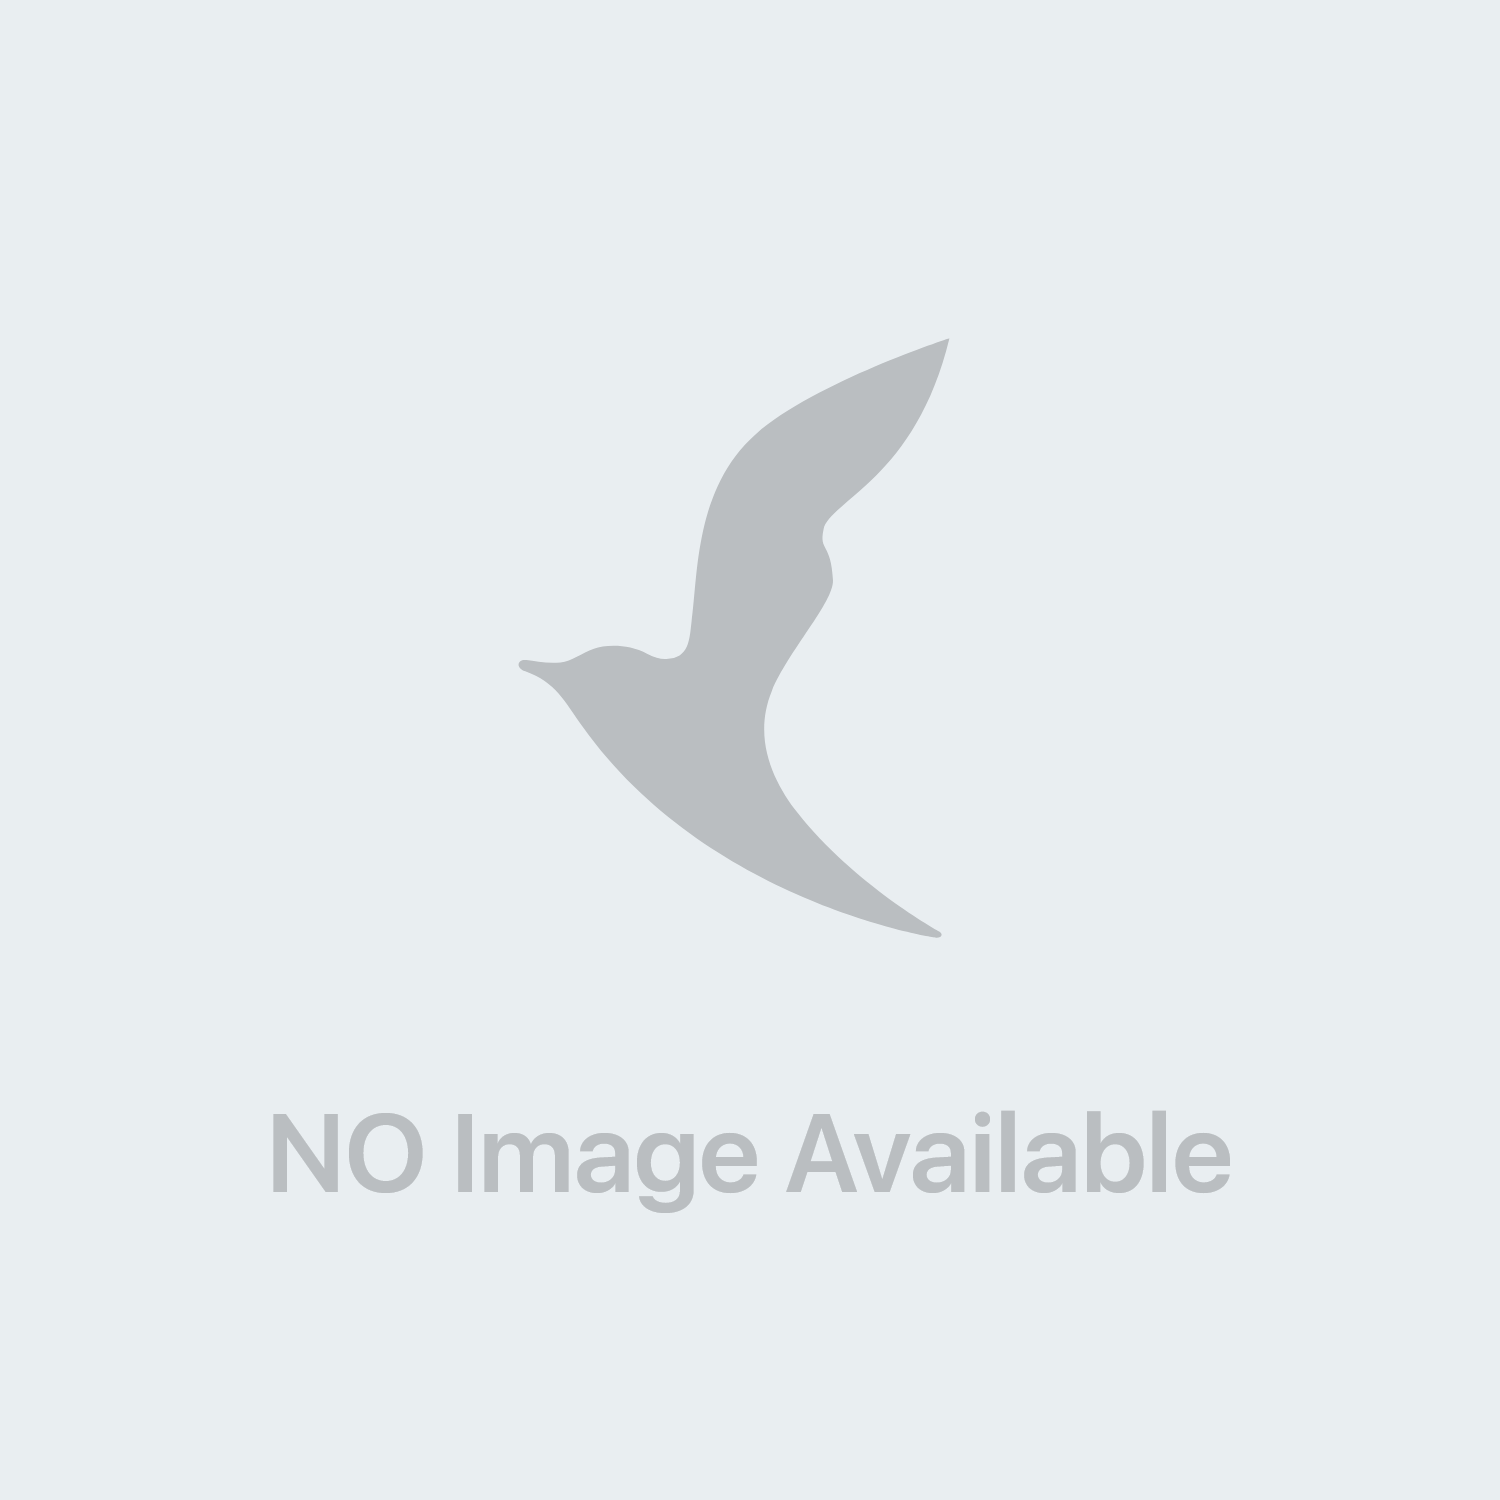 GLUCOSAMINA Joint Cpx Plus Cpr